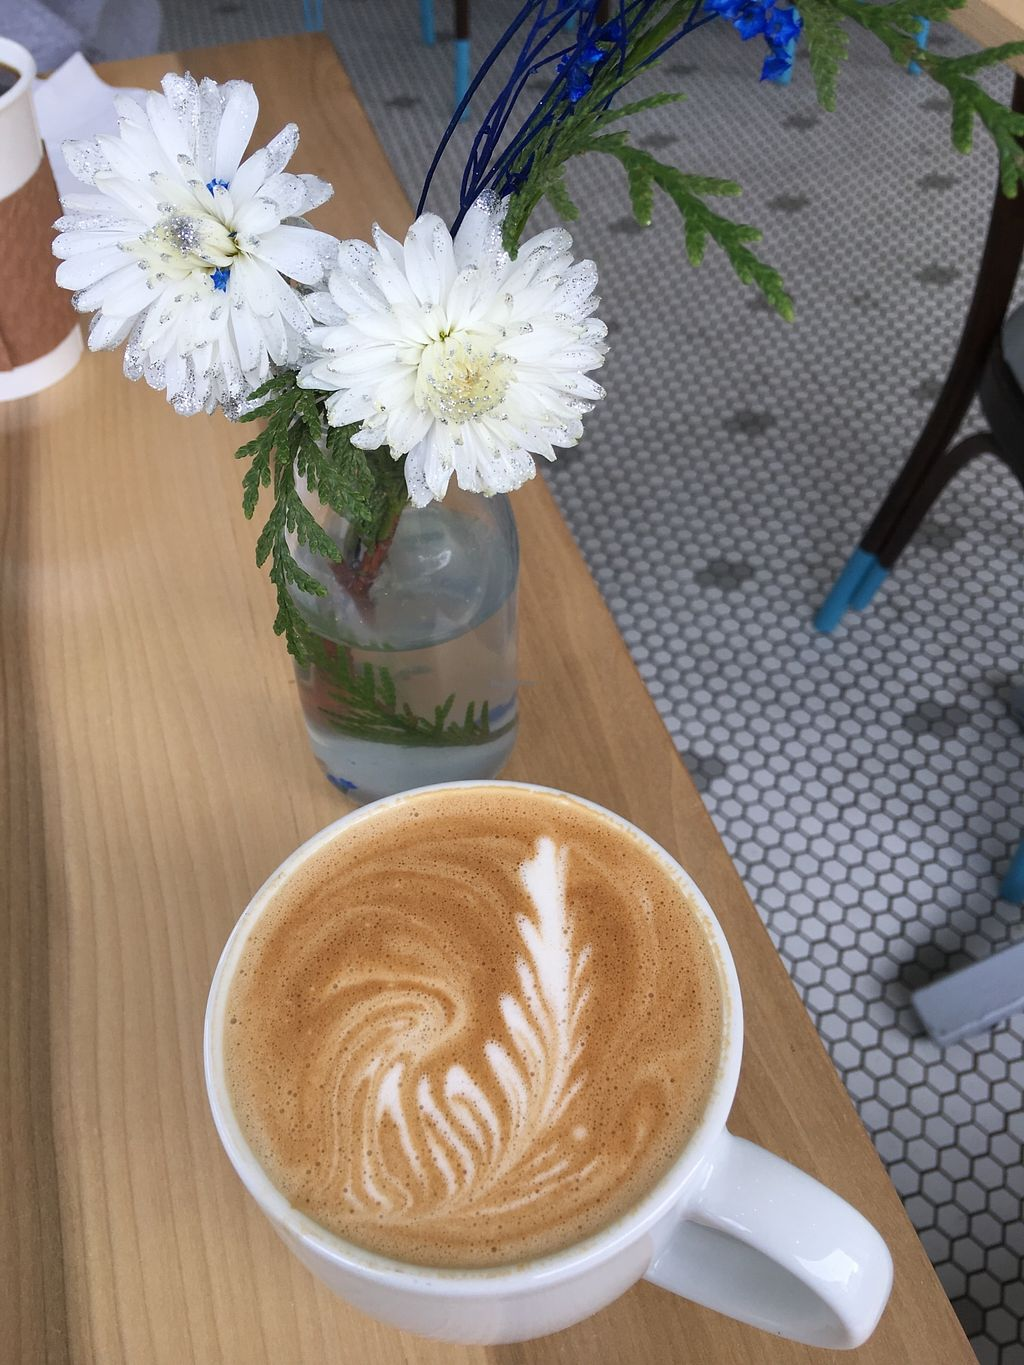 "Photo of The Sweet Praxis  by <a href=""/members/profile/SuzieJoConstantin"">SuzieJoConstantin</a> <br/>Vanilla Oat Milk Latte <br/> January 16, 2018  - <a href='/contact/abuse/image/109657/347281'>Report</a>"